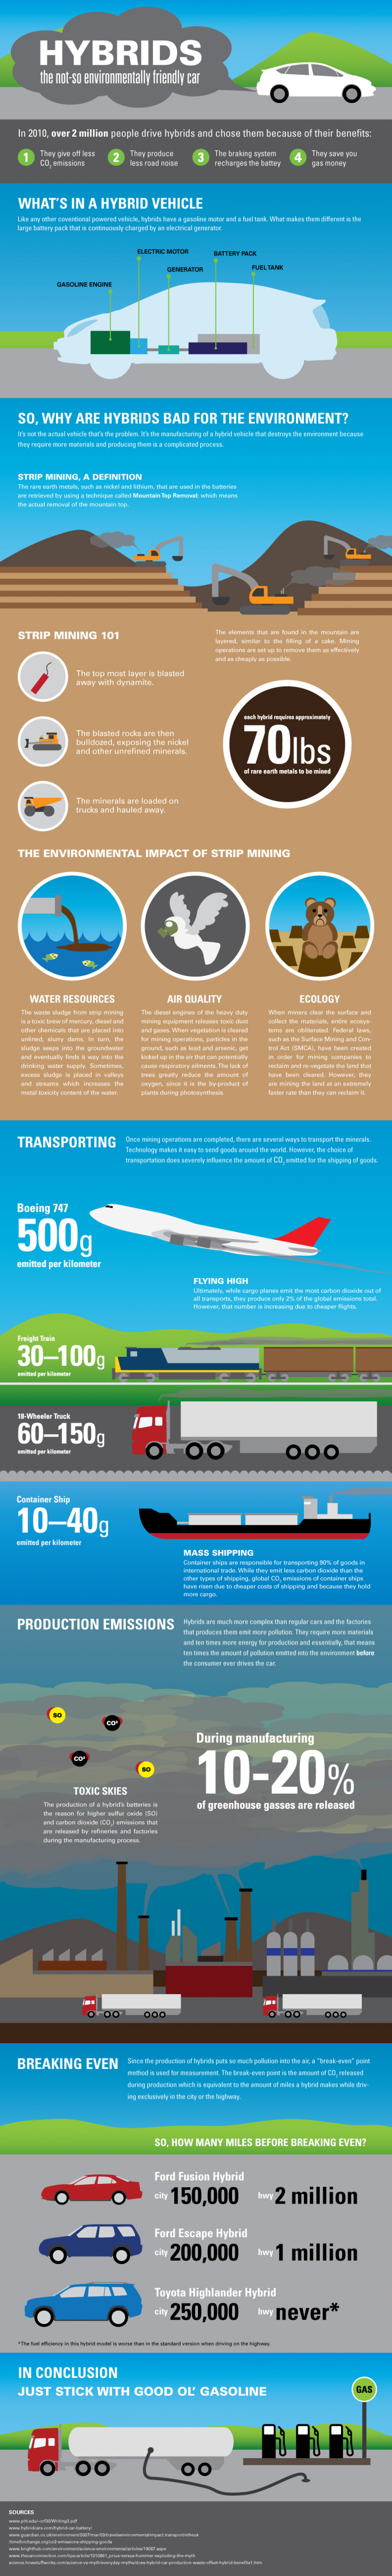 Hybrids: The Not-so Environmentally Friendly Car Infographic